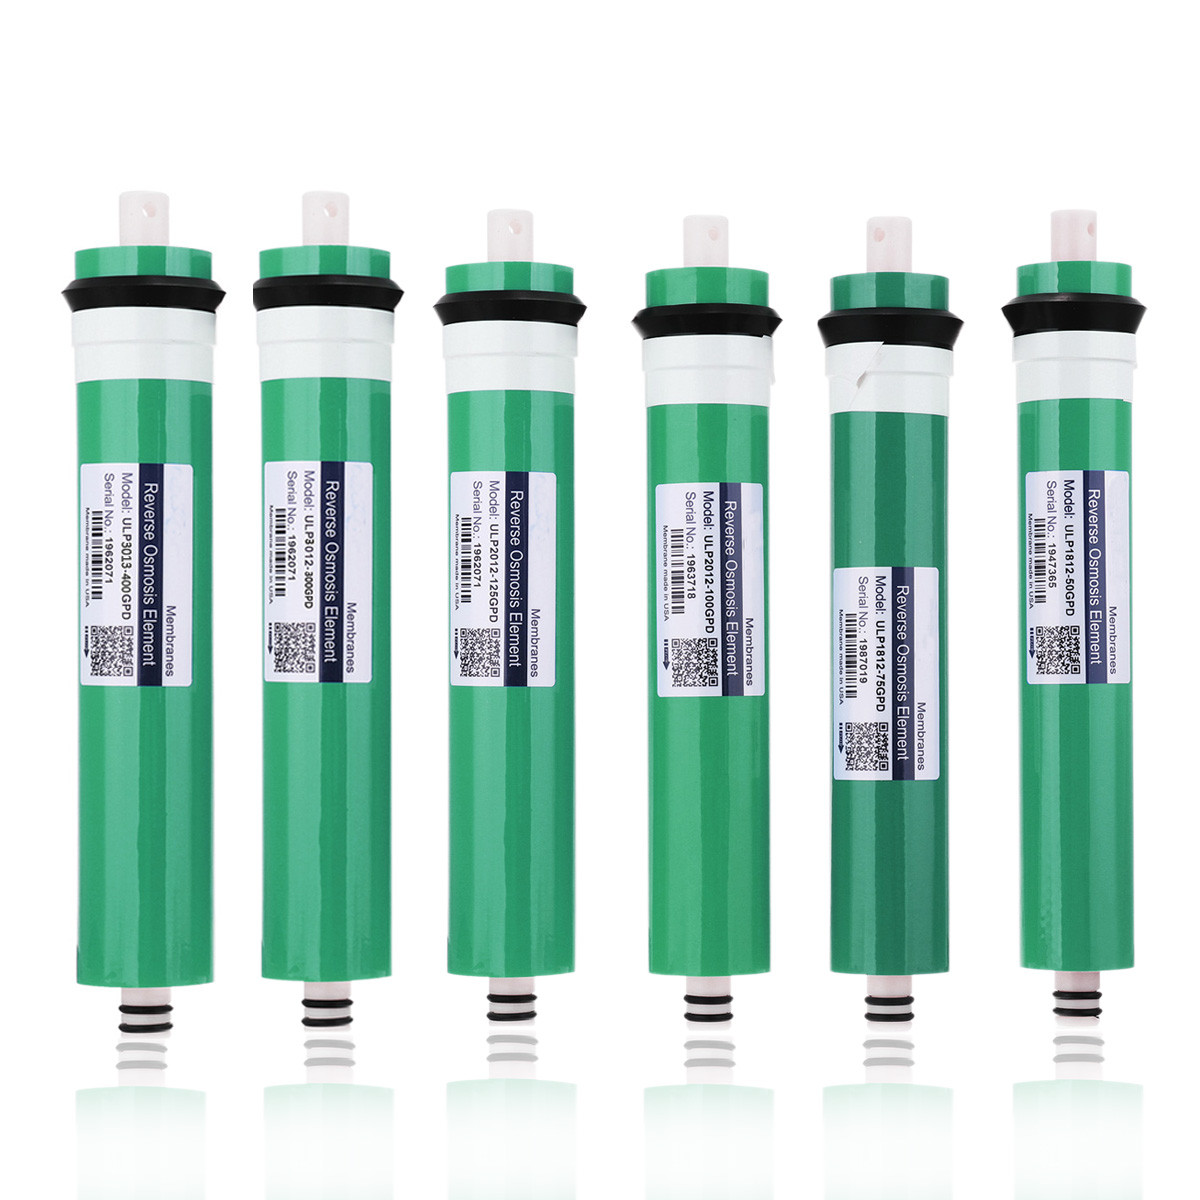 50/75/100/125/300/400GPD Kitchen Reverse Osmosis RO Membrane Water Filter Replacement Water System Purifier Drinking Treatment